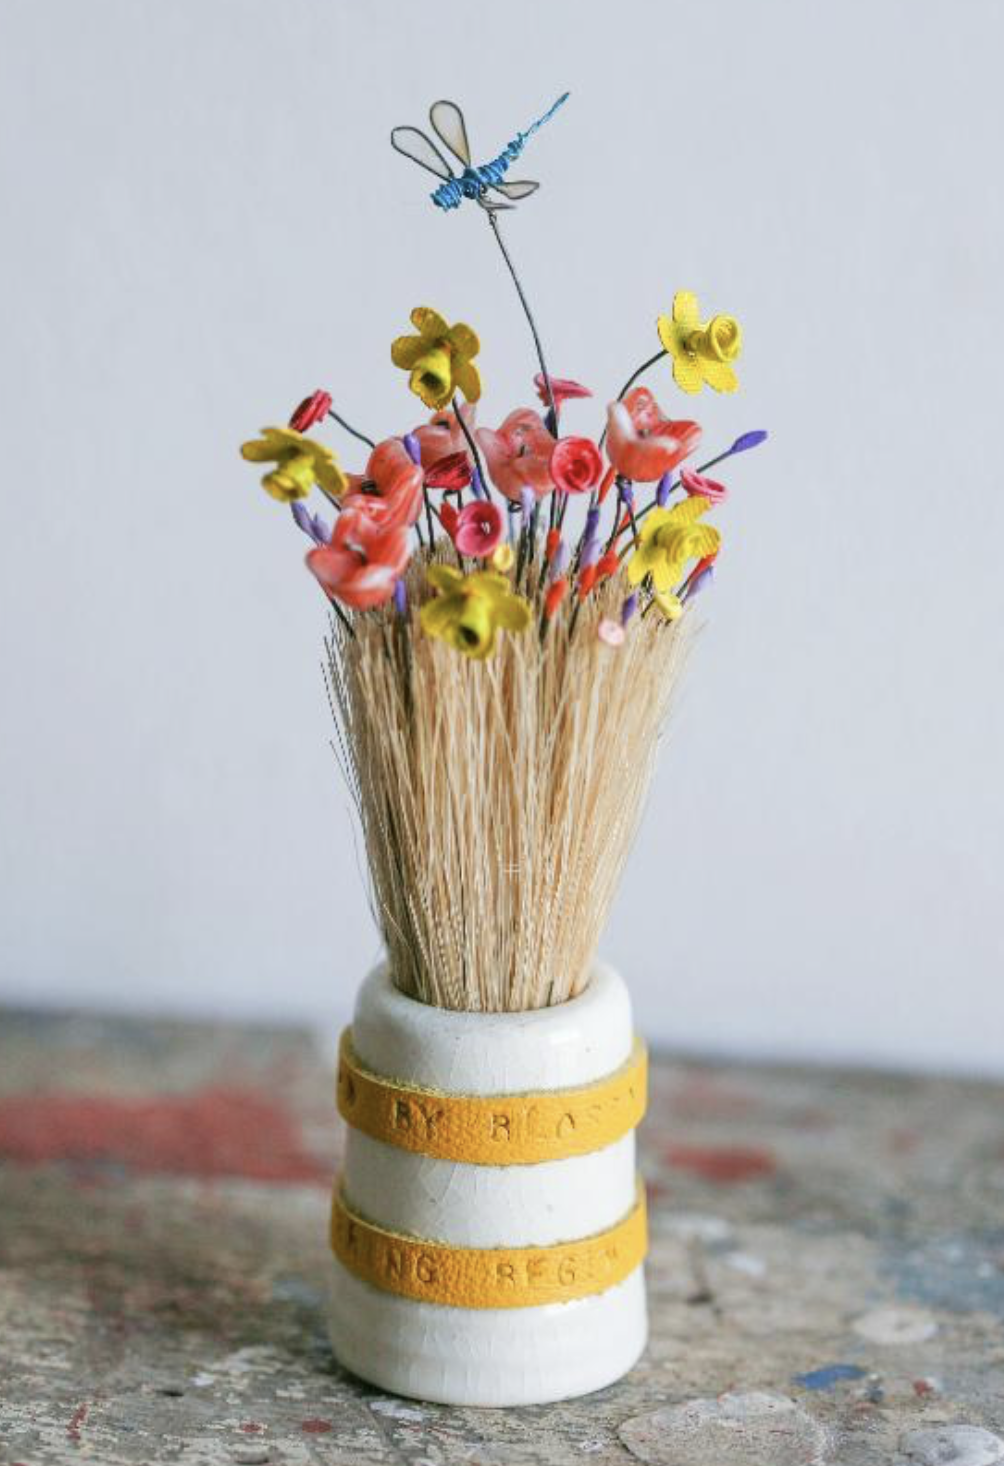 The Blossom Brush by Little Burrow Designs. madebyhandonline.com